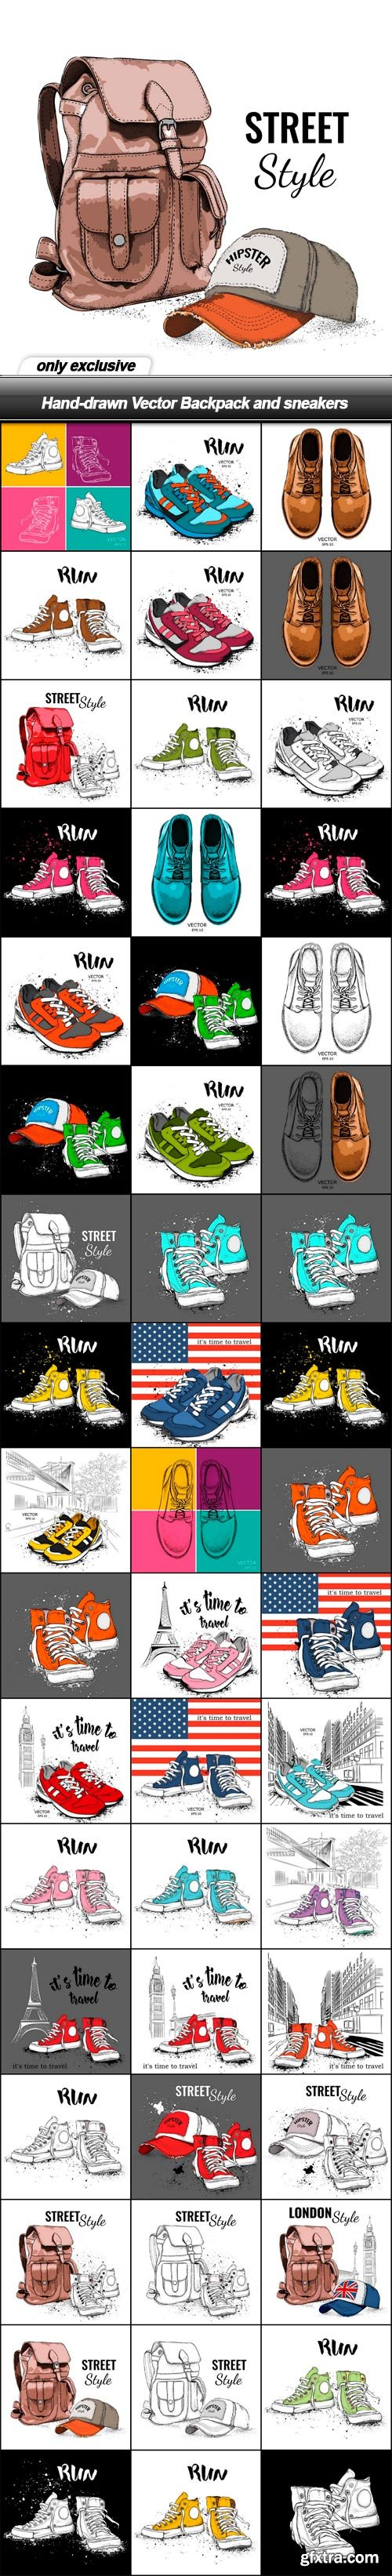 Hand-drawn Vector Backpack and sneakers - 51 EPS